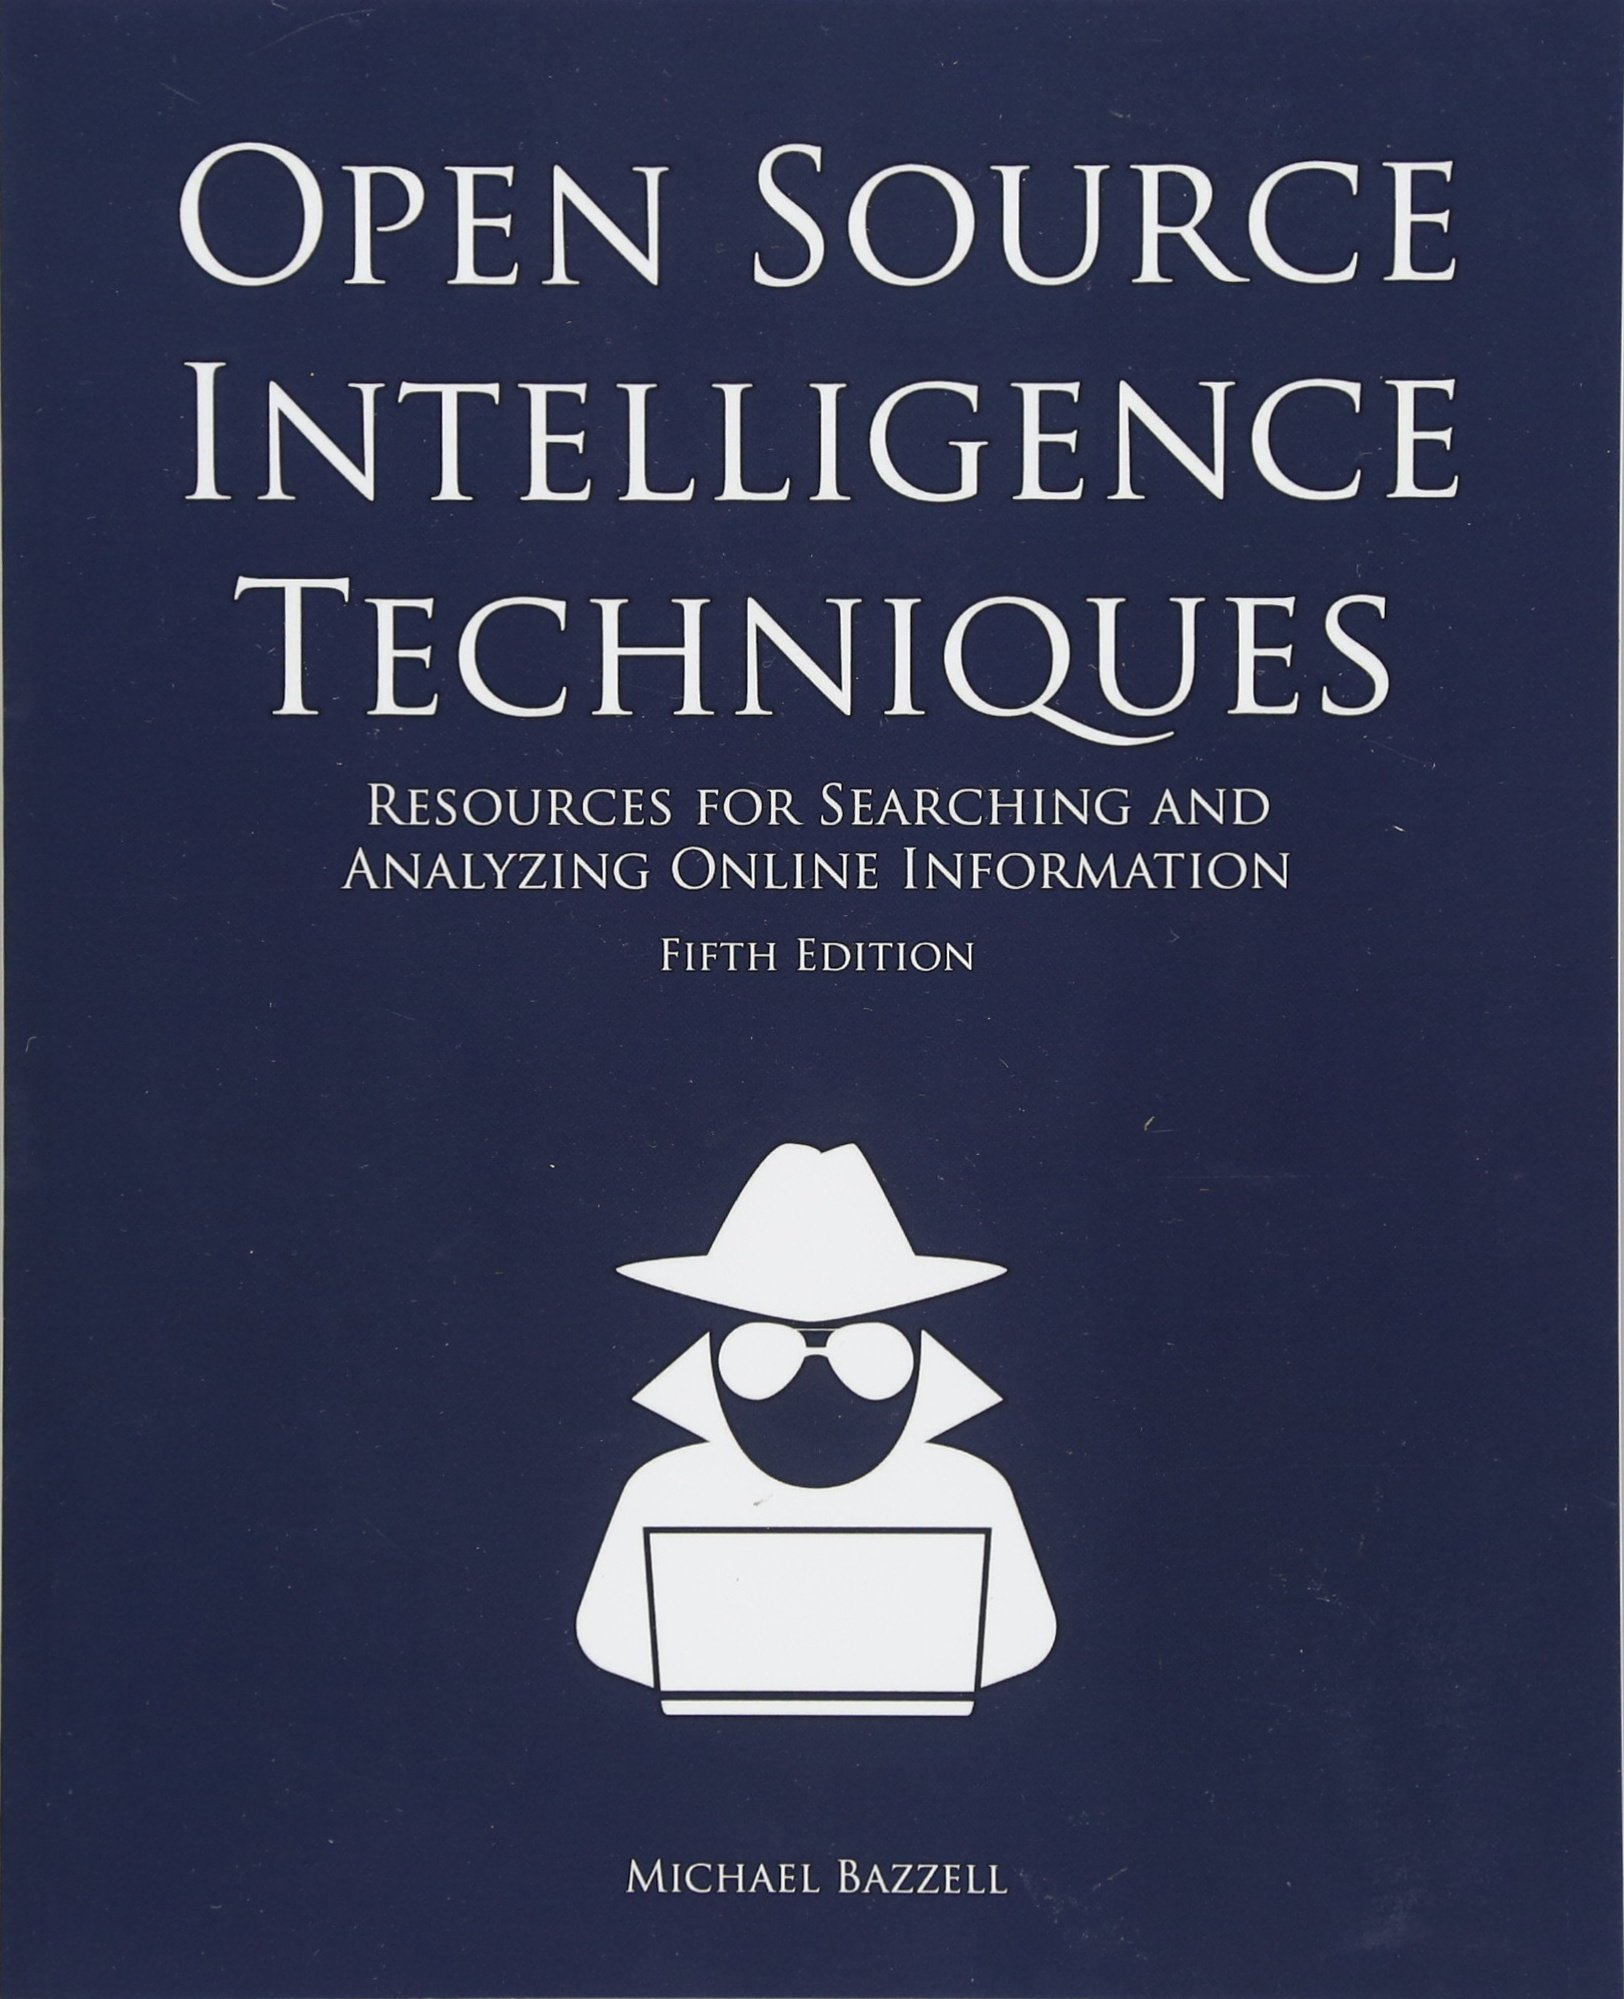 Open Source Intelligence Techniques: Resources for Searching and Analyzing Online Information by Bazzell Michael